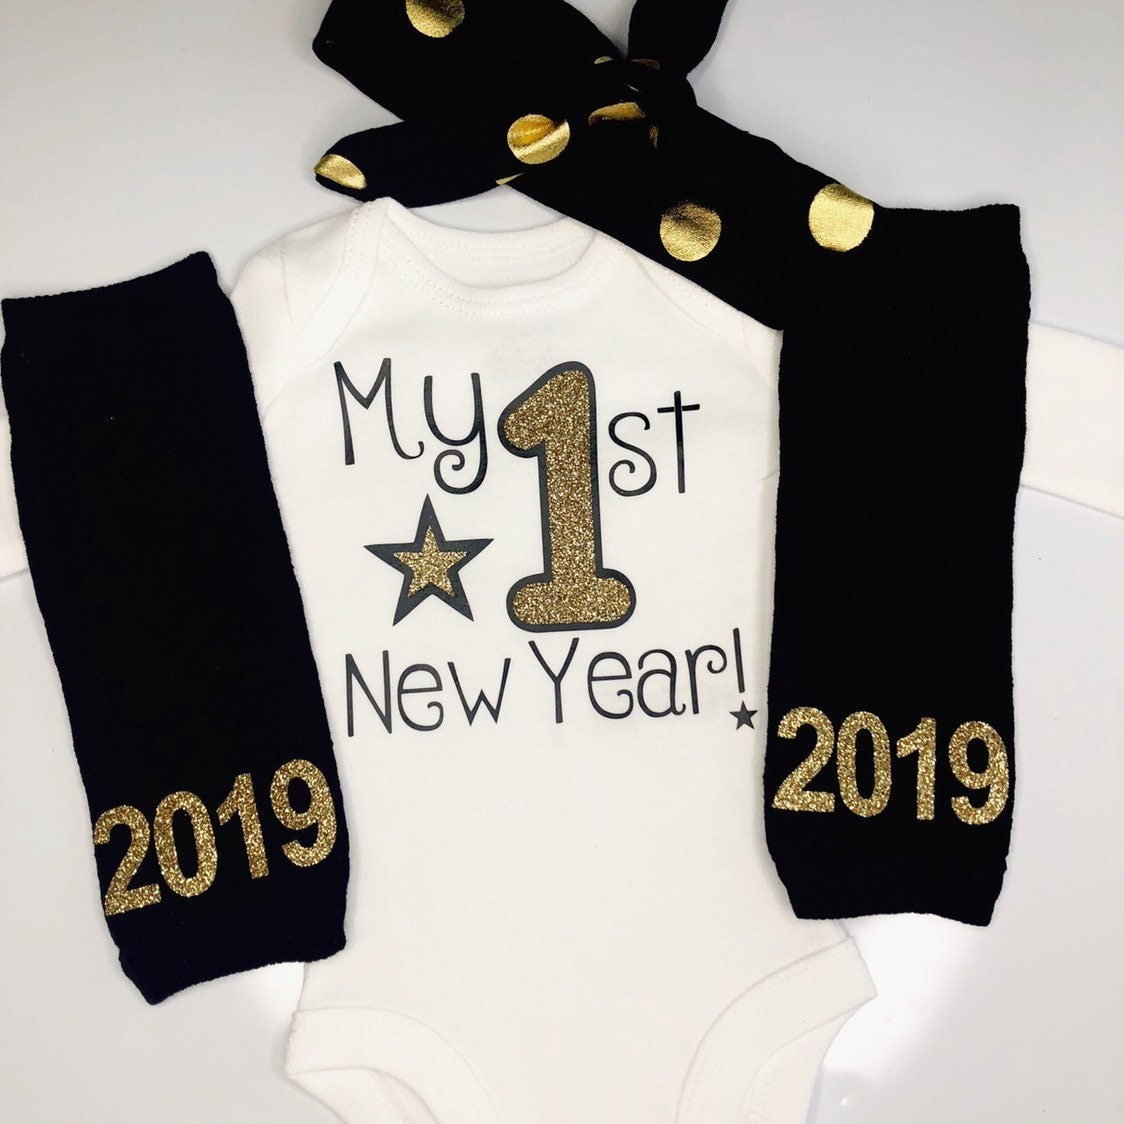 fec002d4a6c20 Baby girl 1st New years outfit - my first new years outfit - 2019 New ...